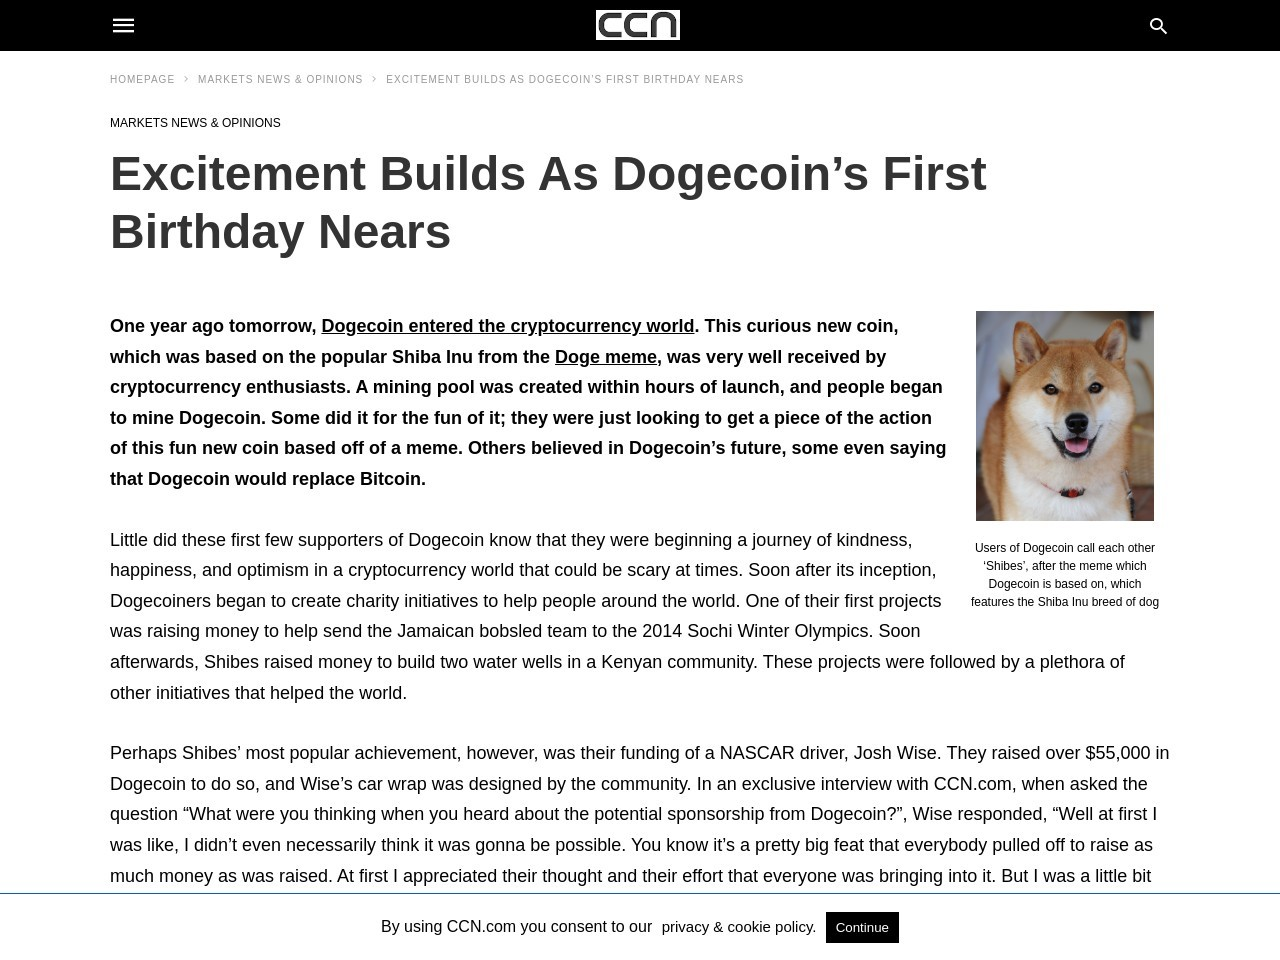 Excitement Builds As Dogecoin's First Birthday Nears